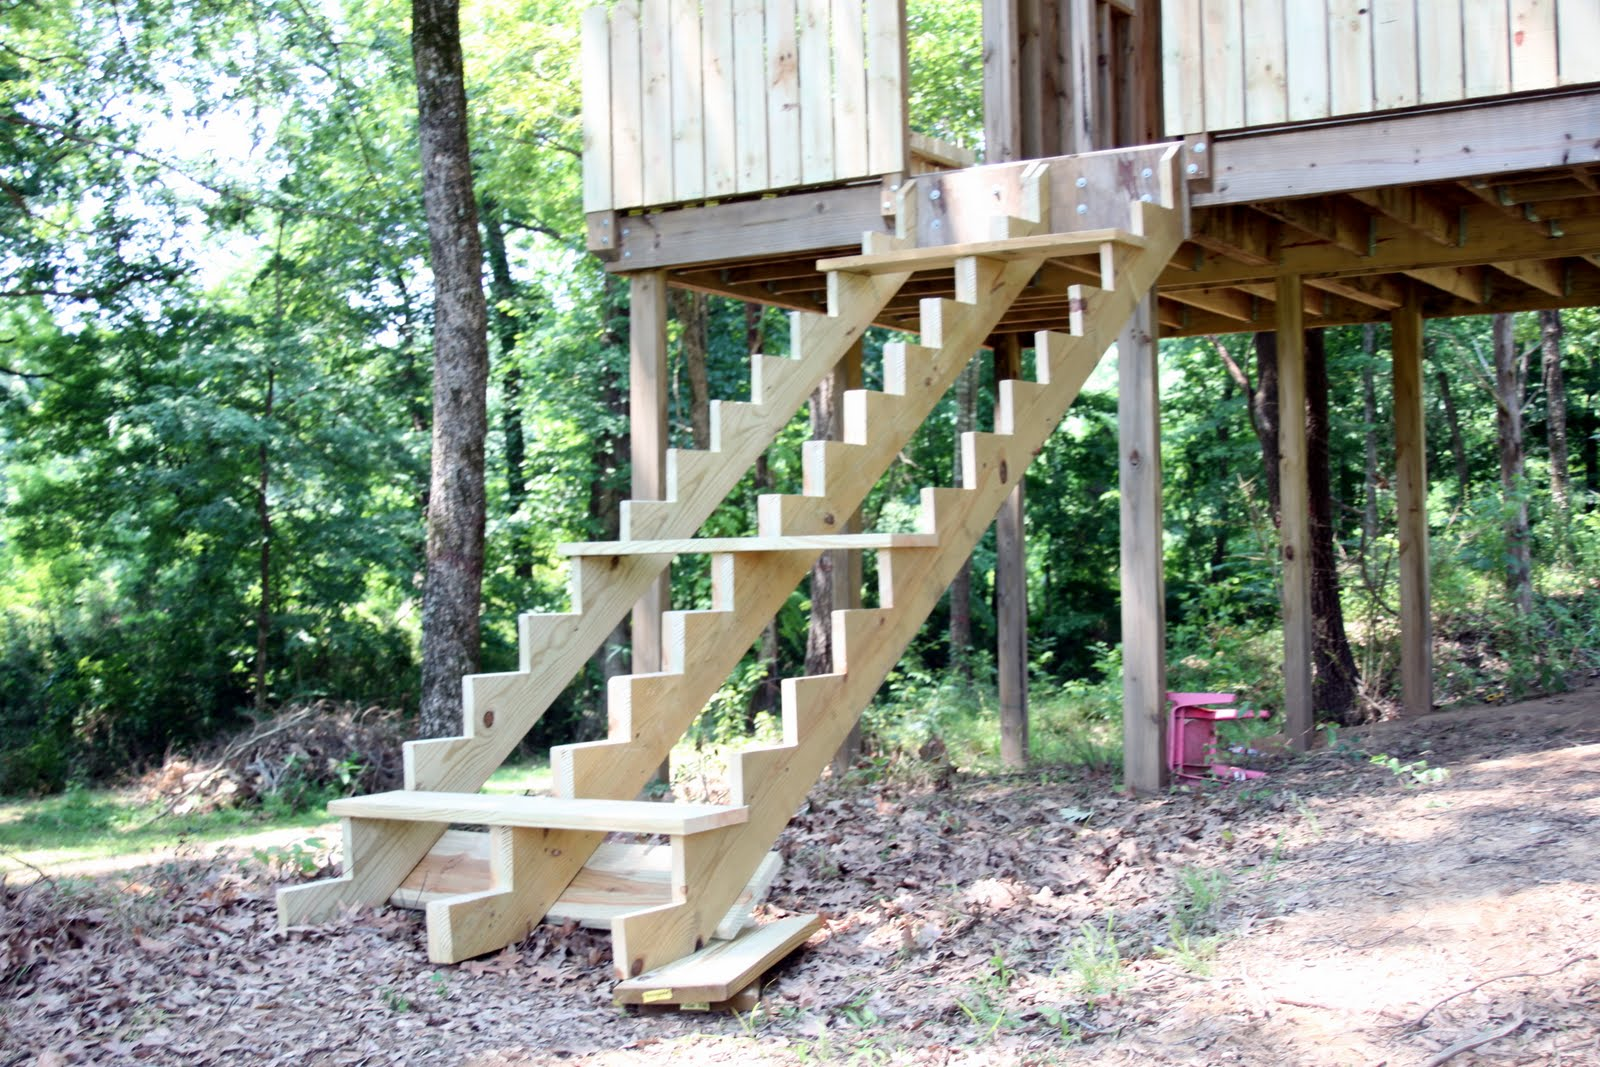 Treehouse Stairs!